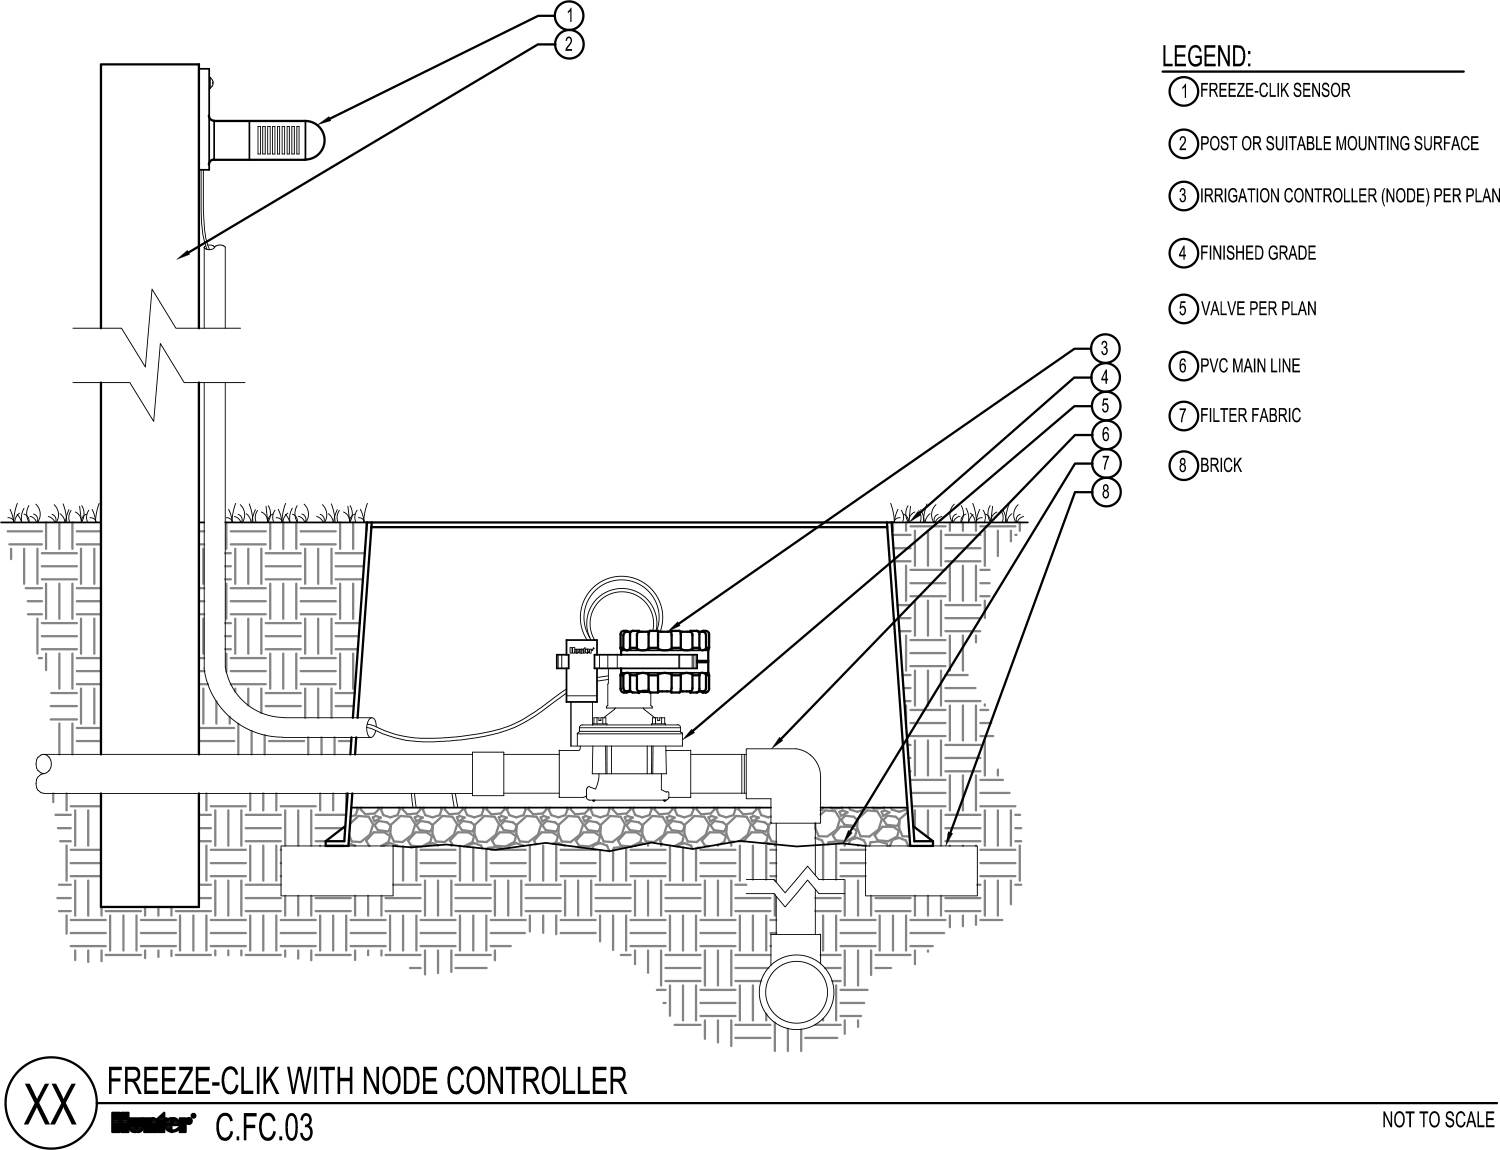 CAD - Freeze Clik with Node Controller